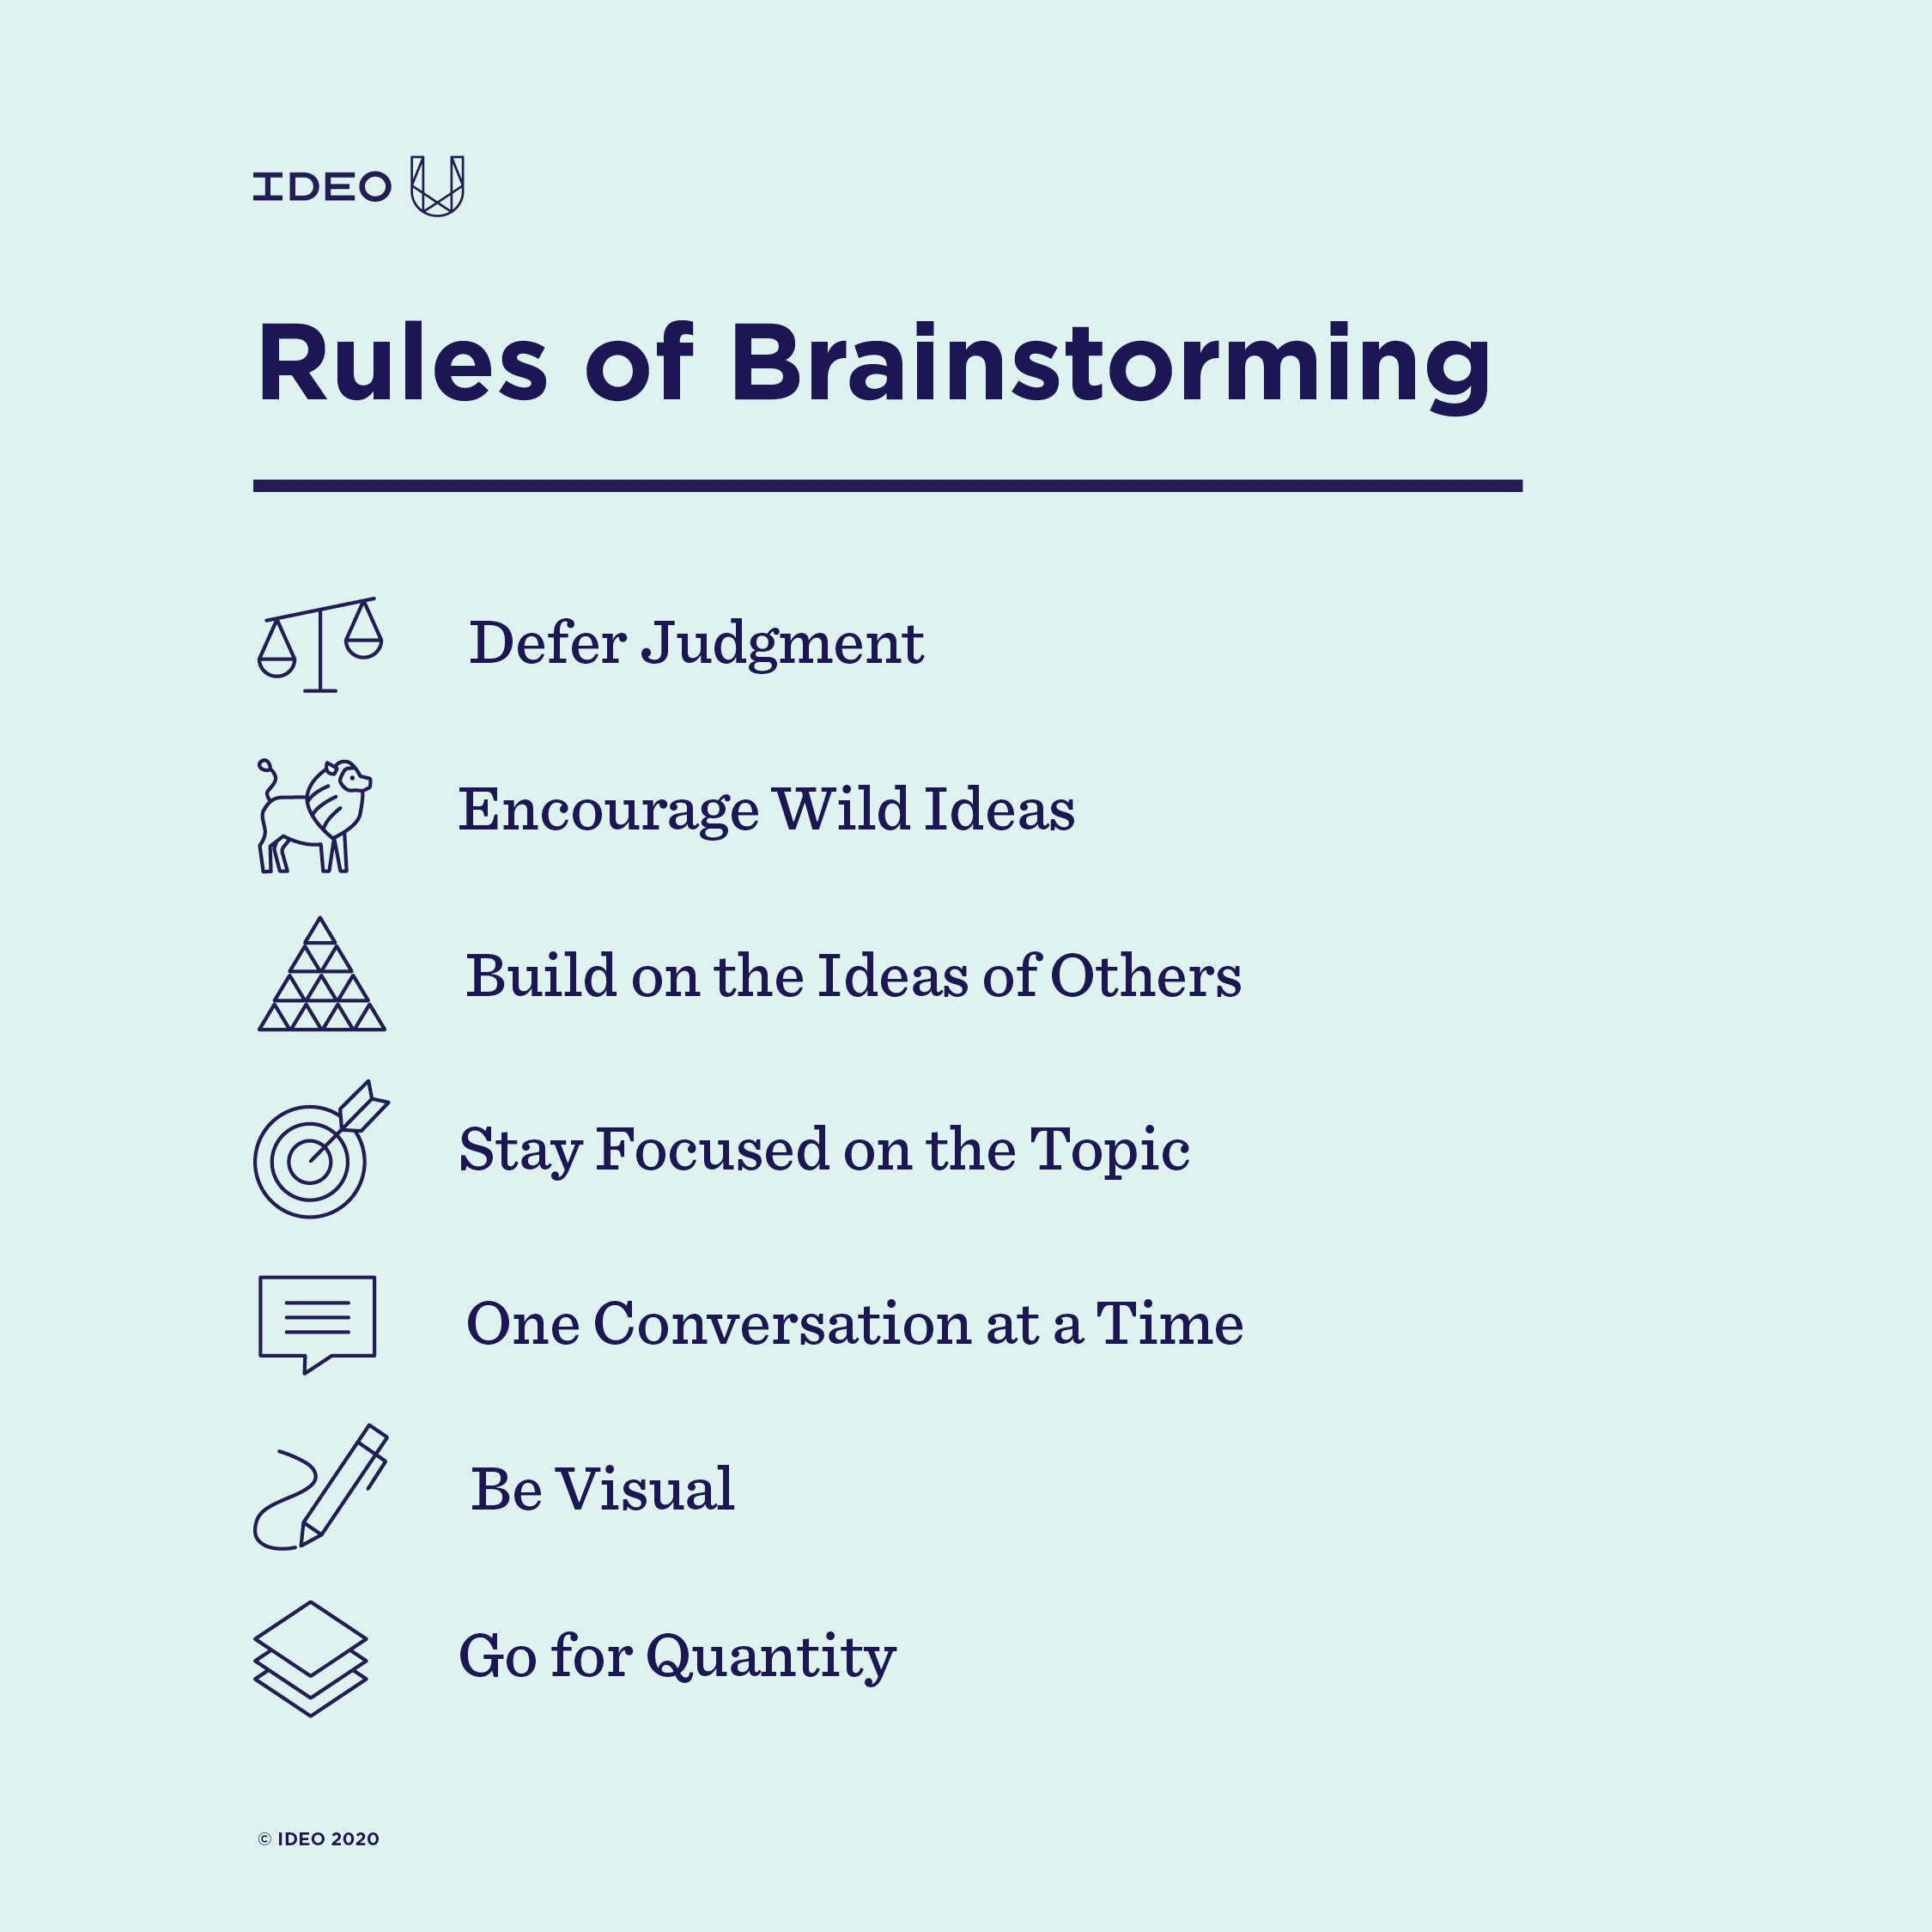 7 Simple Rules of Brainstorming – IDEO U